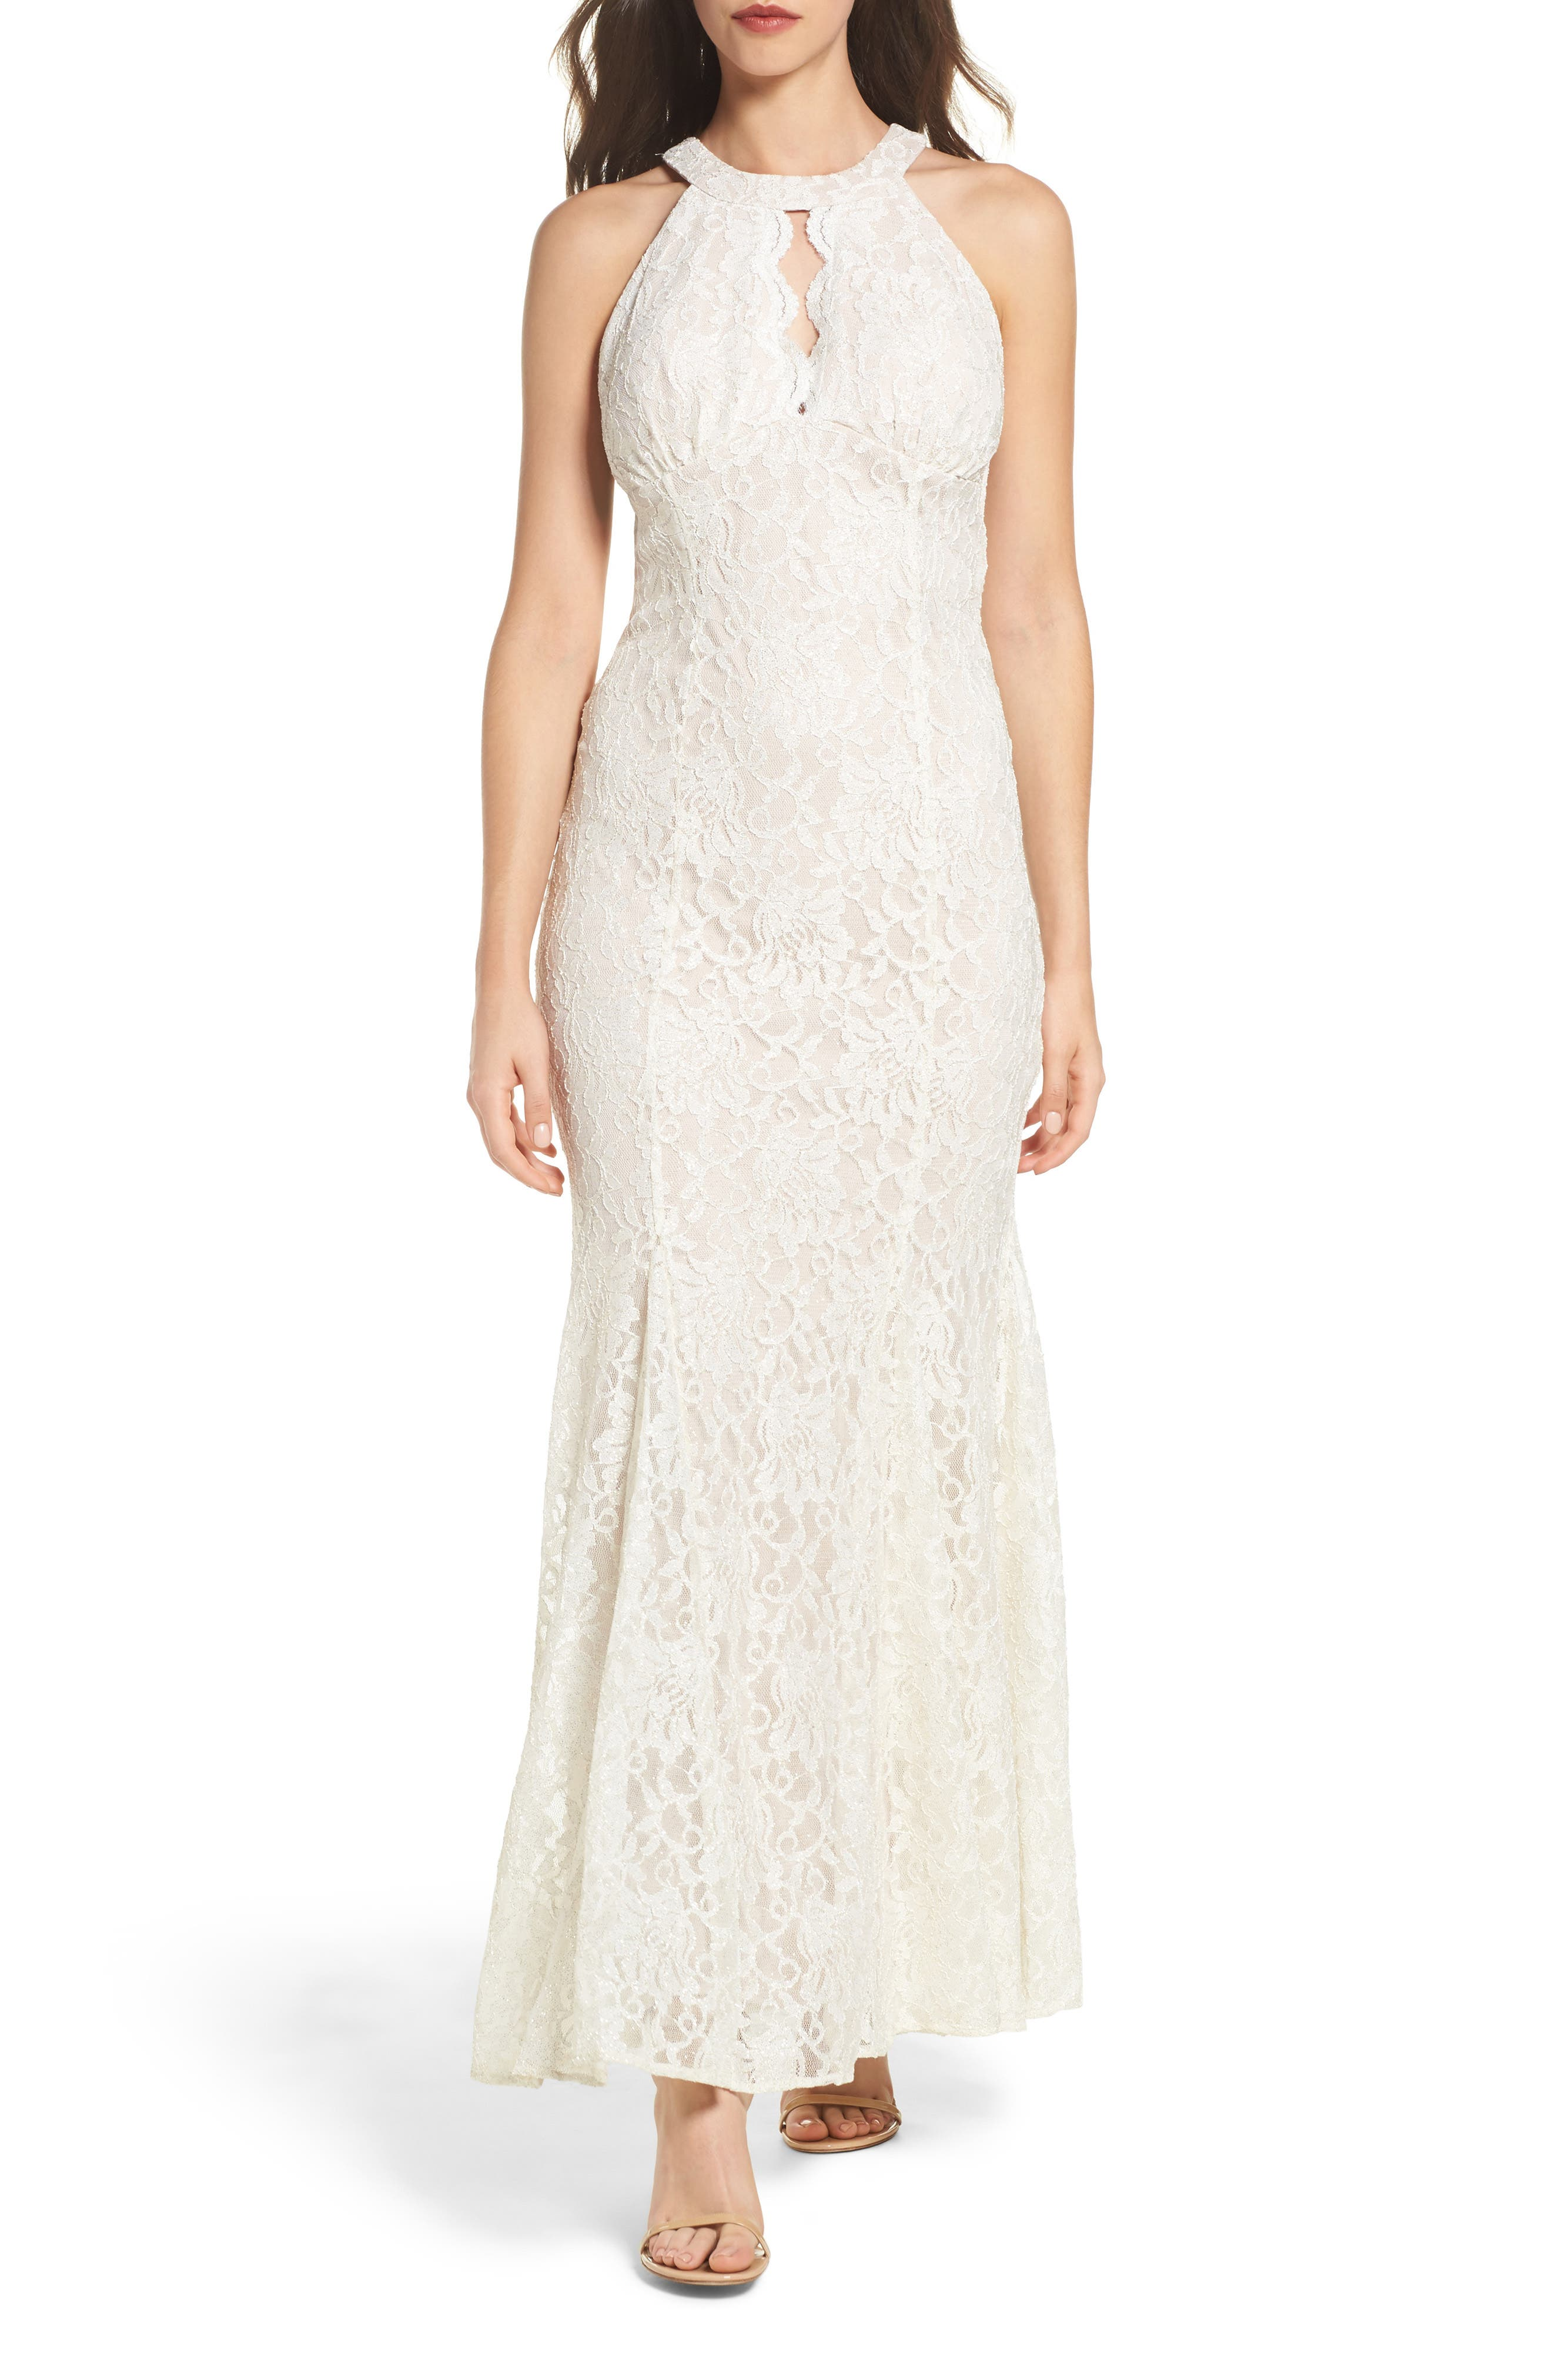 Scallop Detail Lace Gown,                             Main thumbnail 1, color,                             Ivory/ Nude